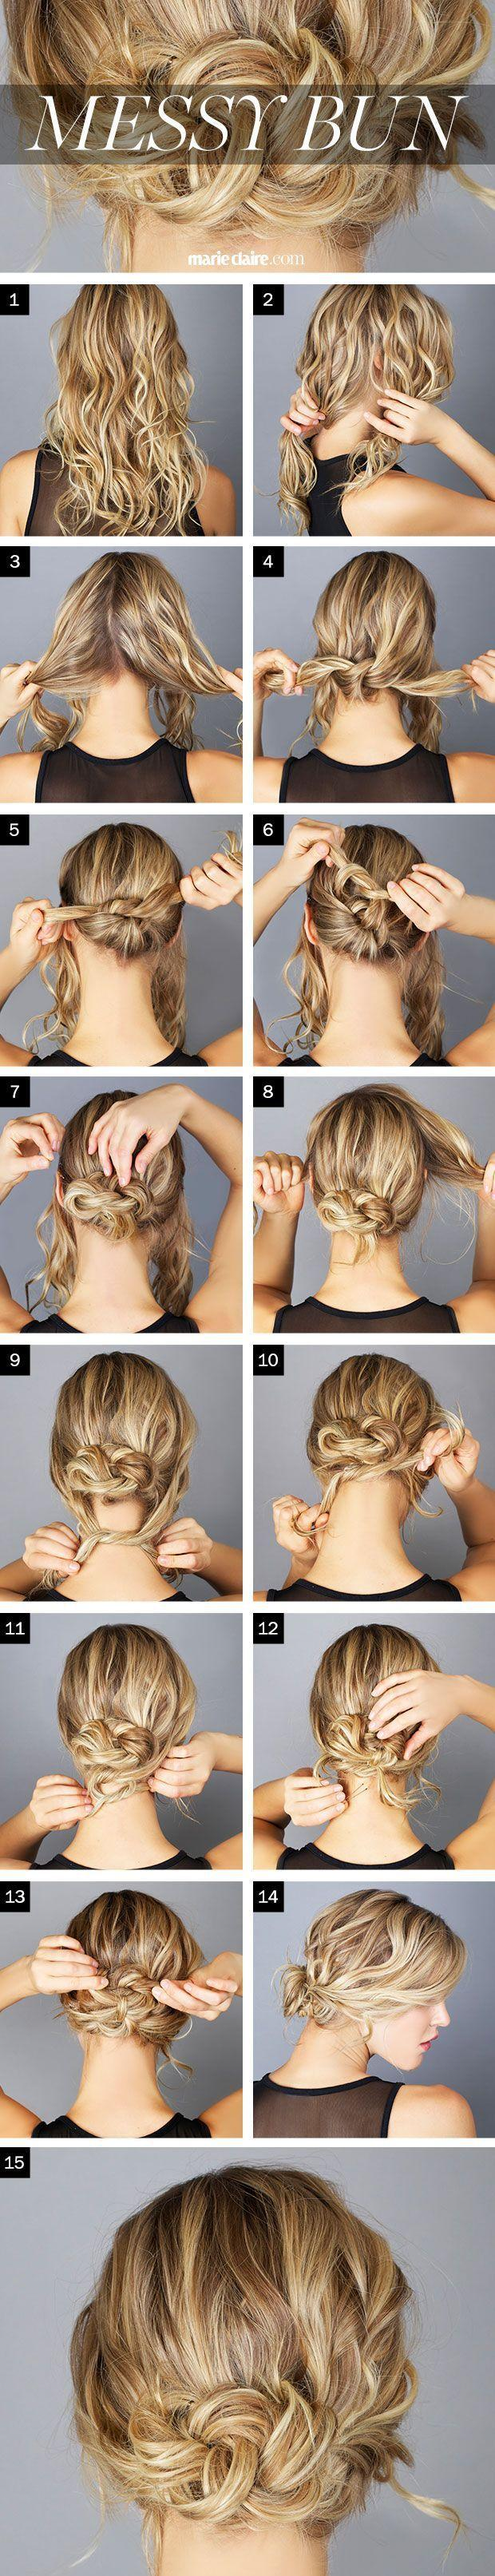 Hochzeit - The Steps To The Perfect Messy Bun! Get Inspired With Haircare From Duane Reade.